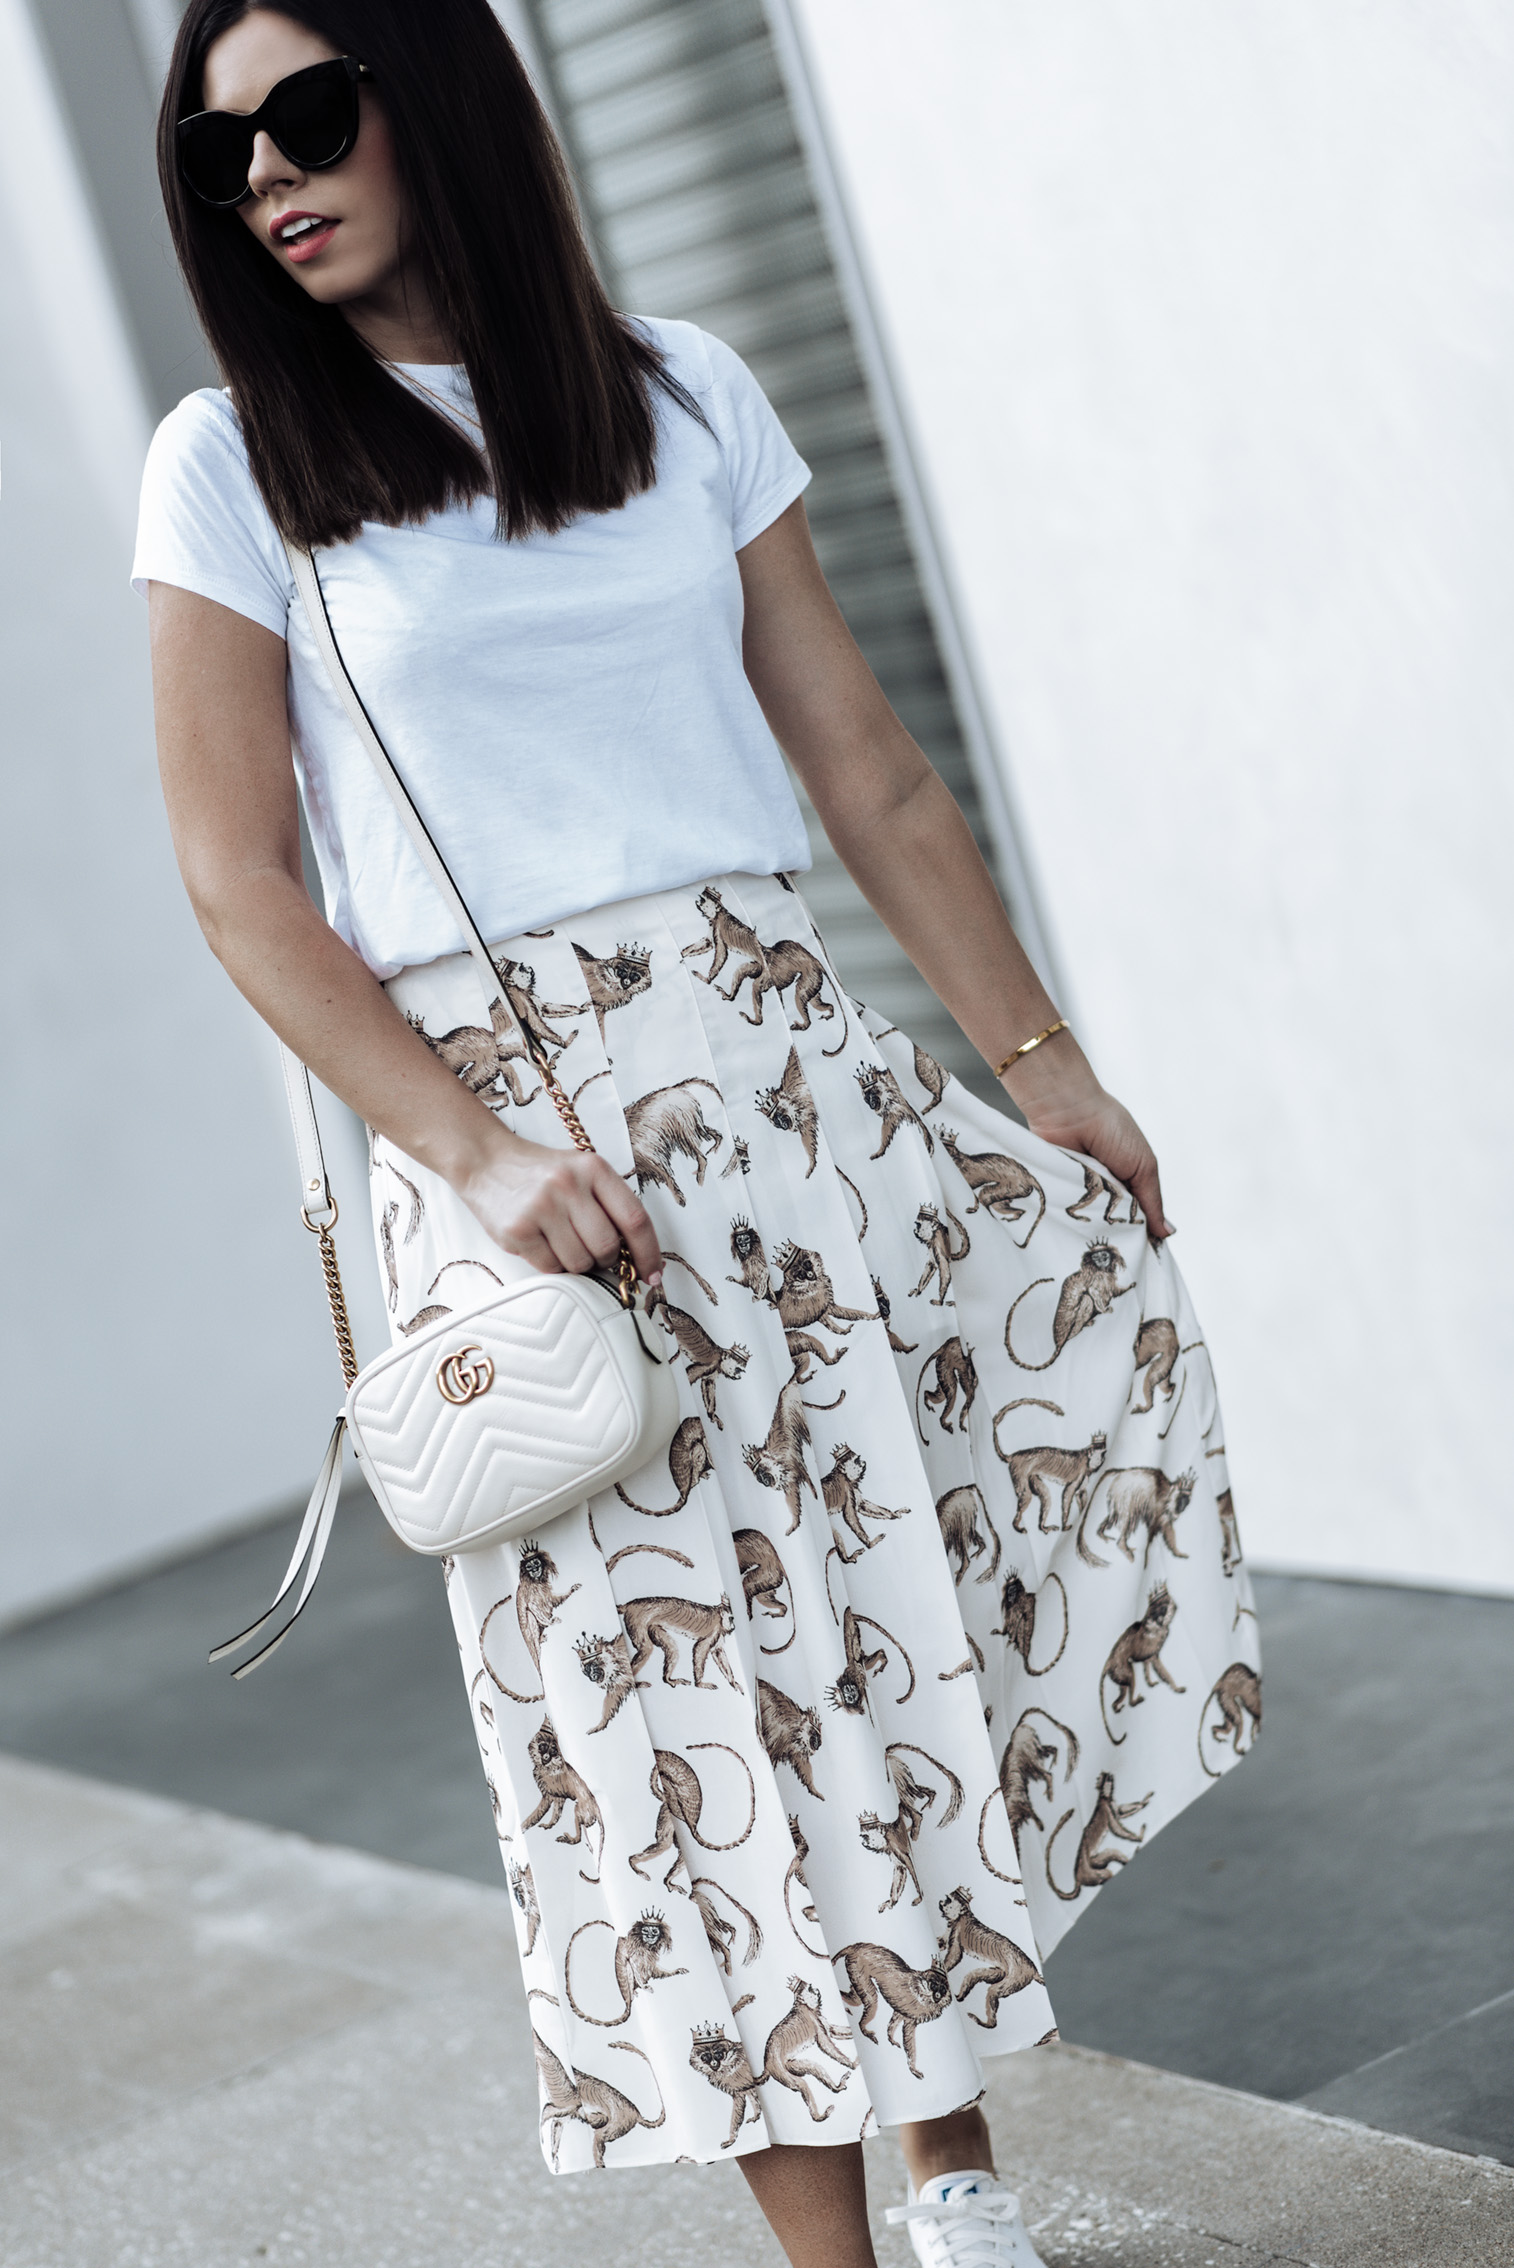 Tiffany Jais fashion and lifestyle blogger of Flaunt and Center | Monkey Print | Houston fashion blogger | Printed monkey skirt H&M | White Cotton Tee | Keds Kickstart leather sneaker | Gucci Marmont in white